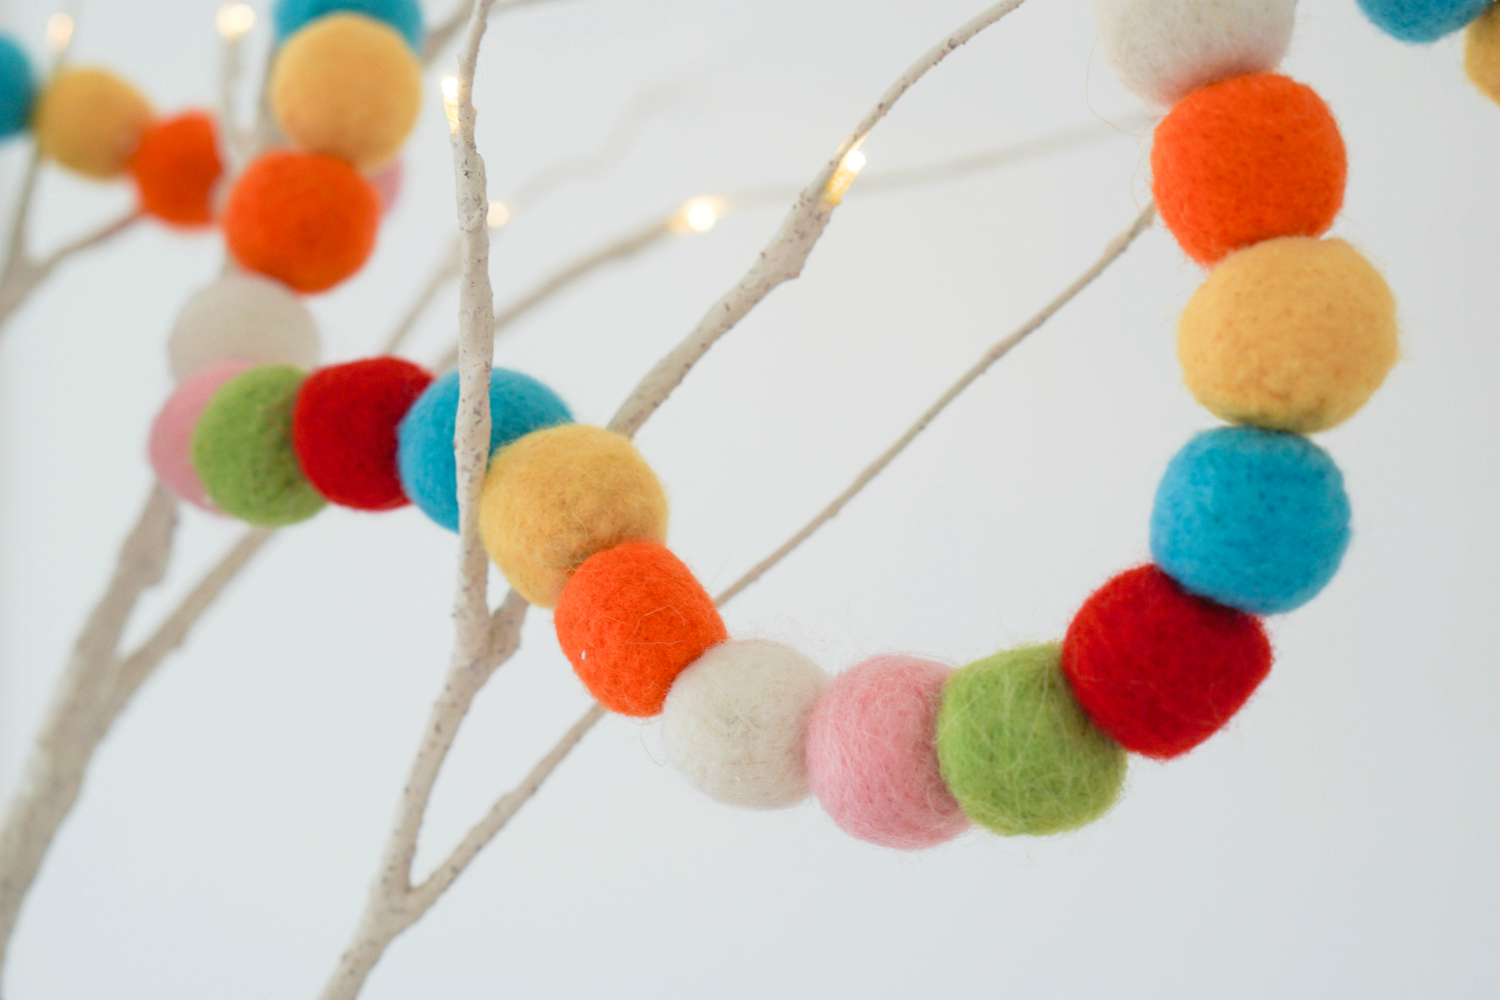 The Ordinary Lovely: Cute and colourful Christmas decorations